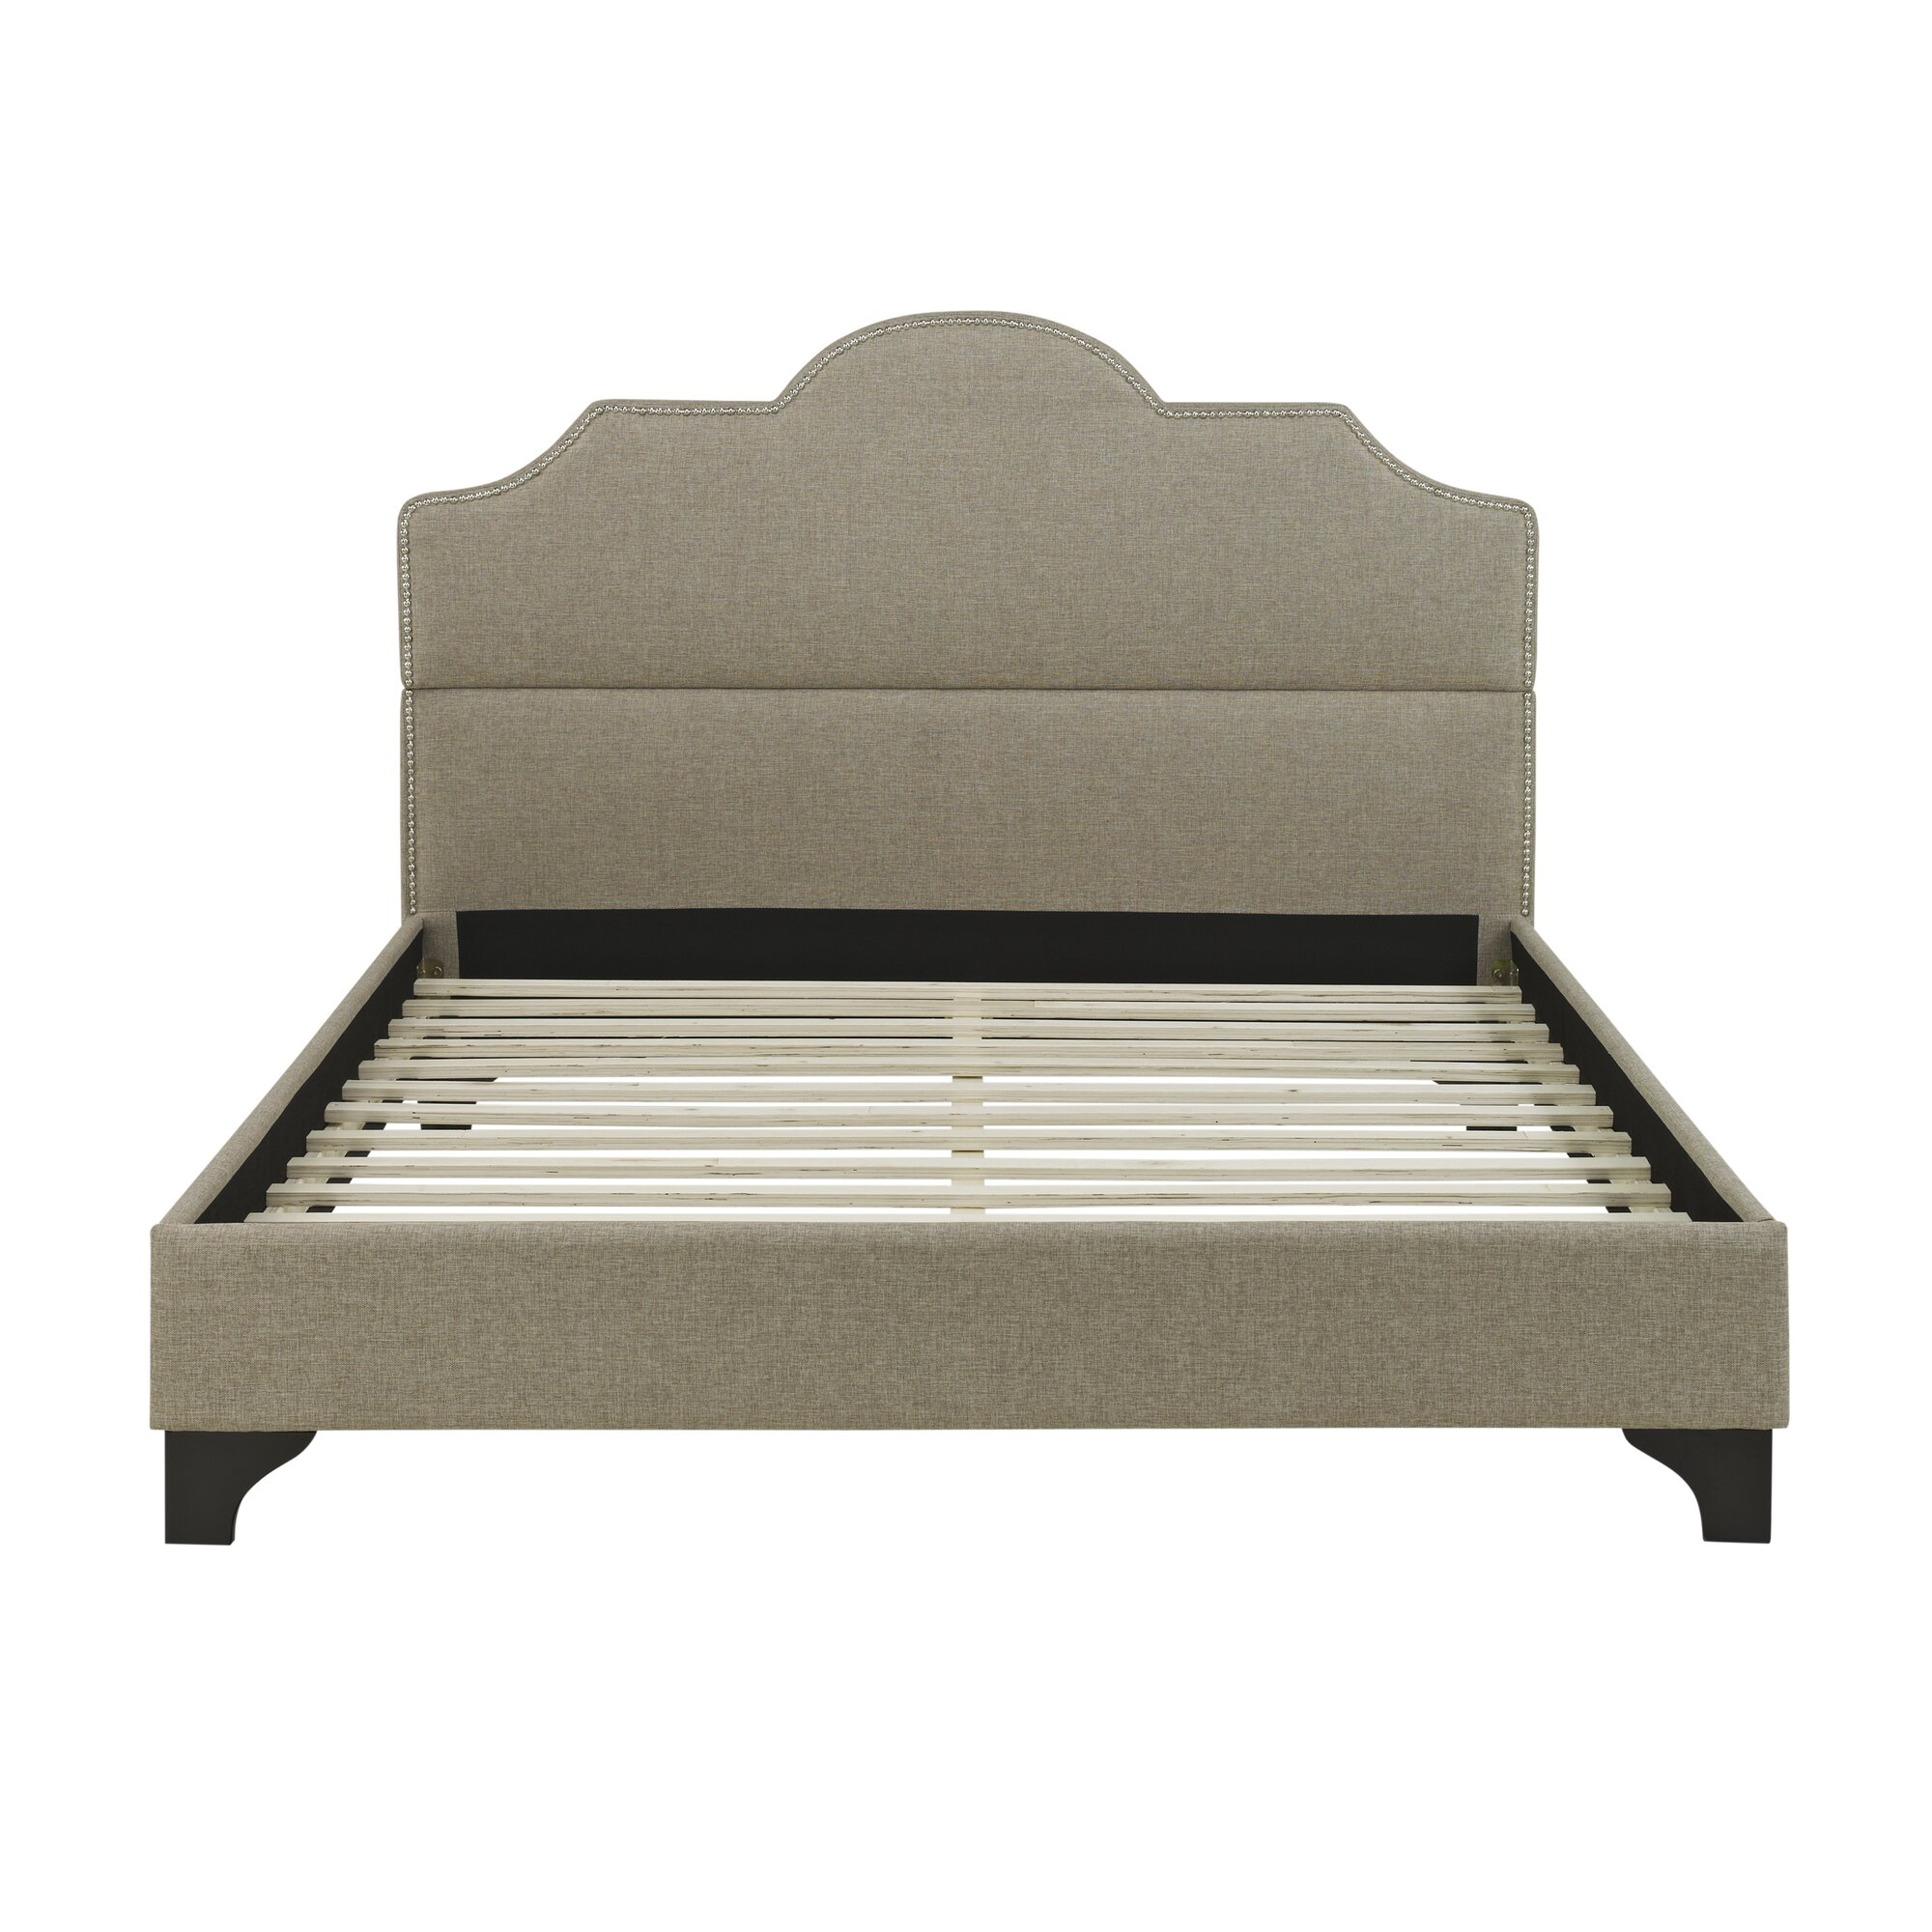 Eco lux upholstered platform bed reviews for Furniture 2000 antioch ca